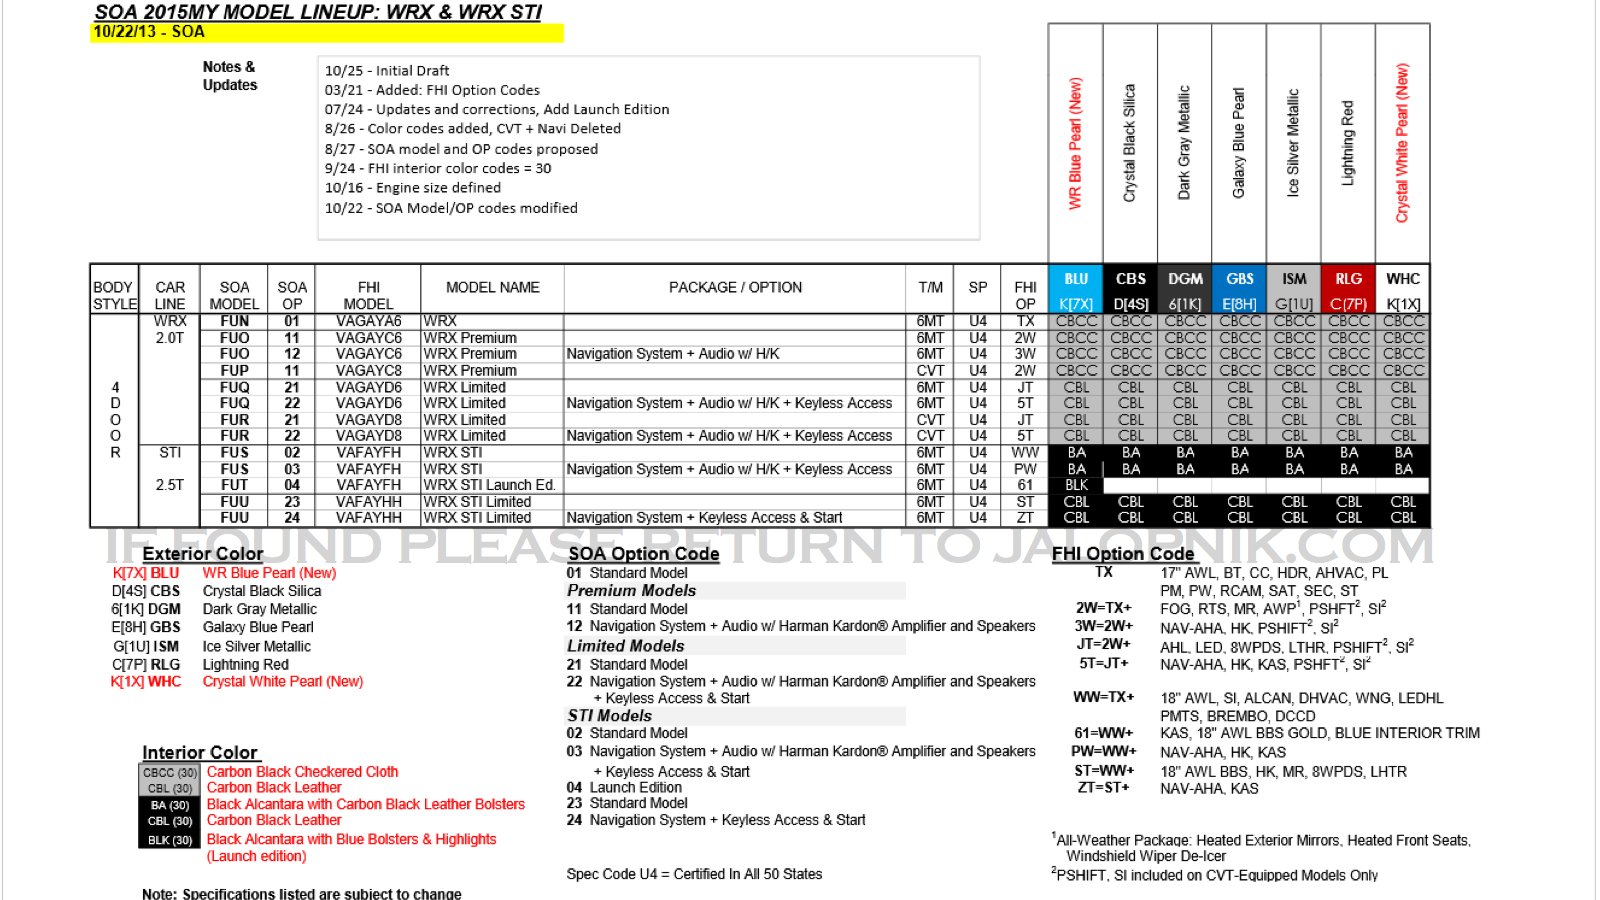 2015 Subaru WRX Options Sheet, courtesy of Jalopnik.com